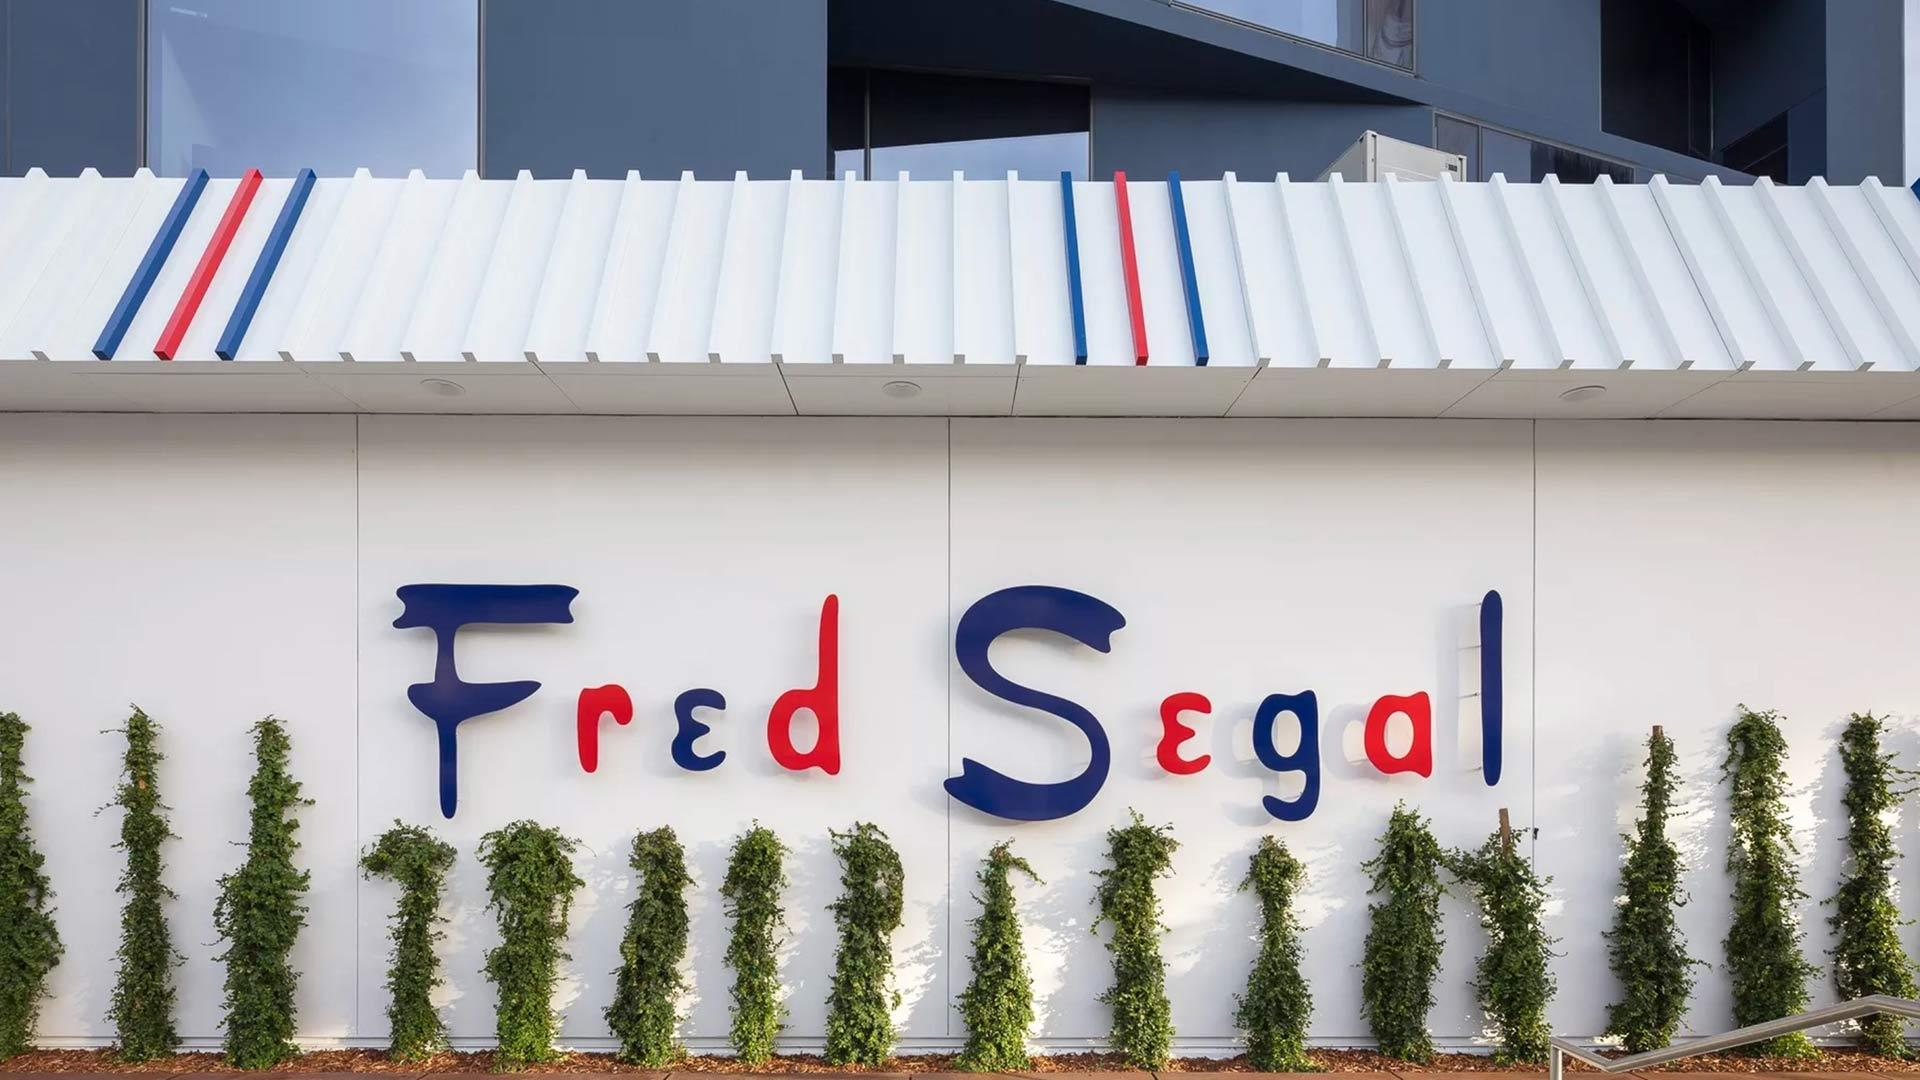 Fred Segal One Year Anniversary Bash